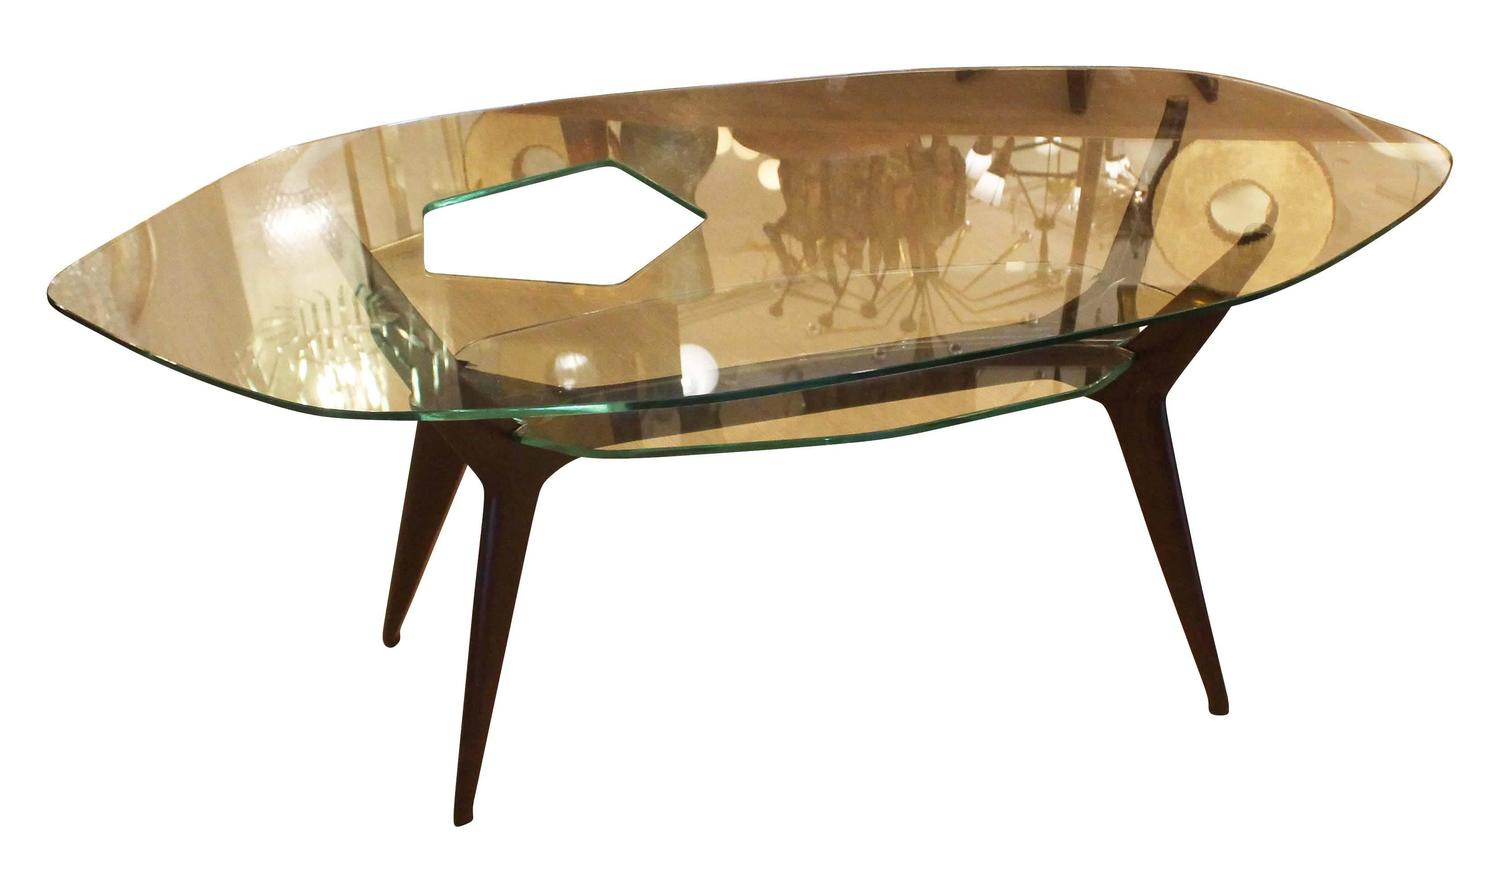 unique coffee table in the style of ico parisi italy 1960s for sale at 1stdibs. Black Bedroom Furniture Sets. Home Design Ideas